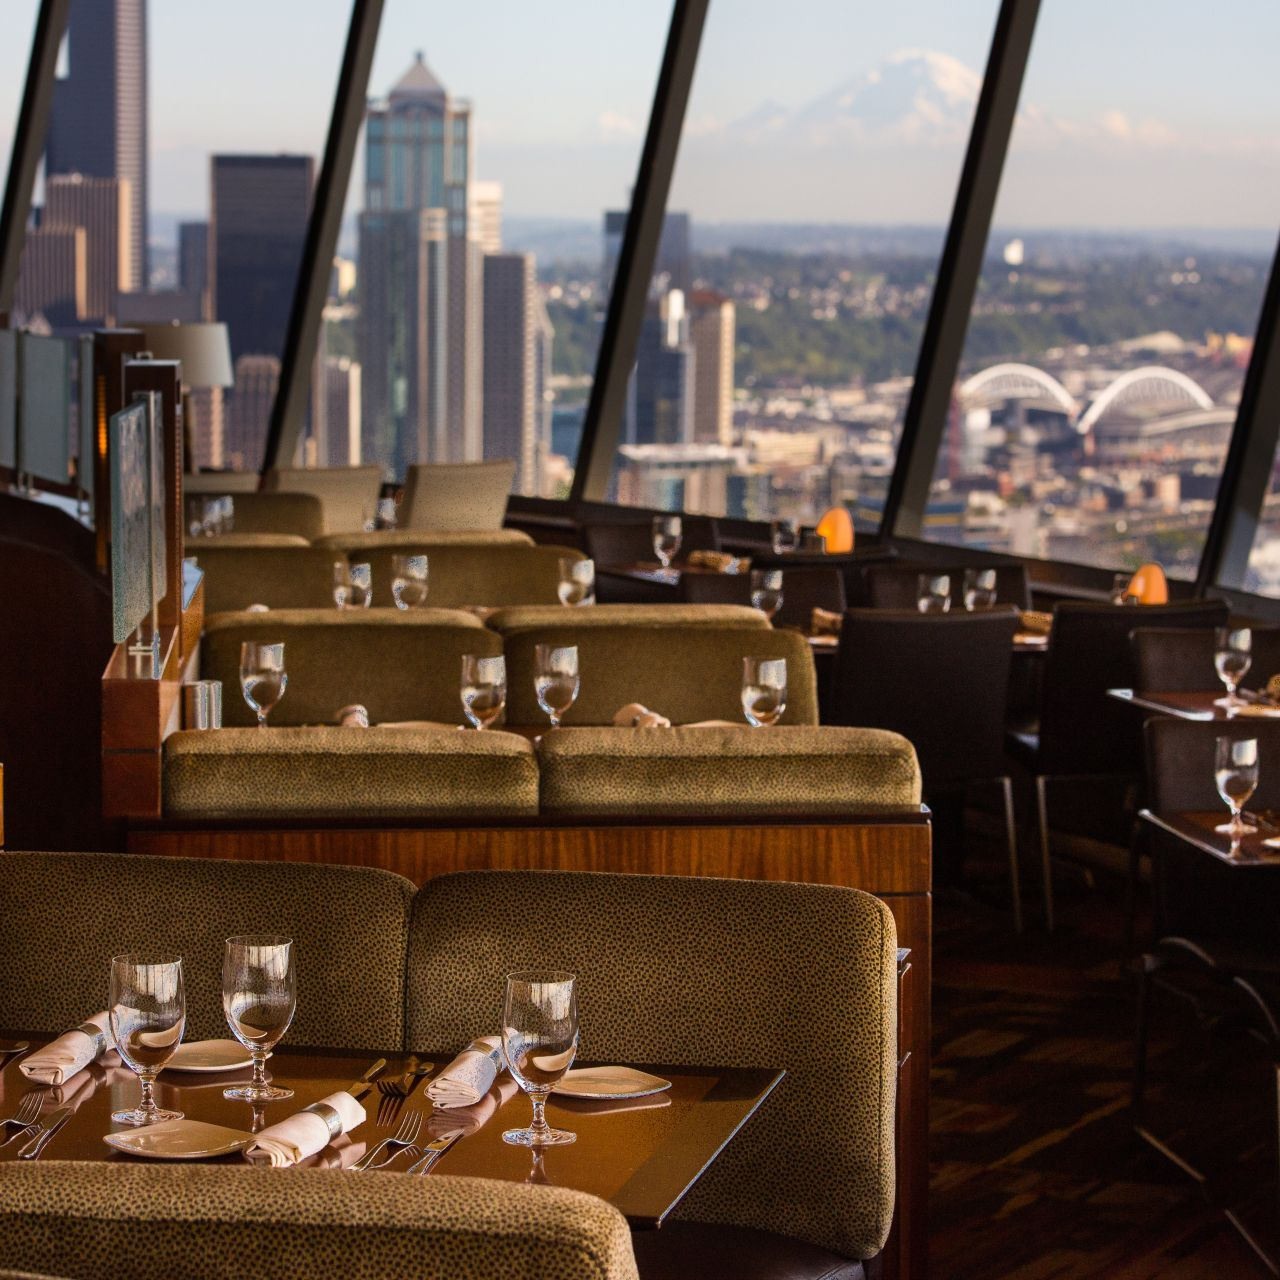 Skycity Restaurant At The Space Needle Seattle Wa Opentable